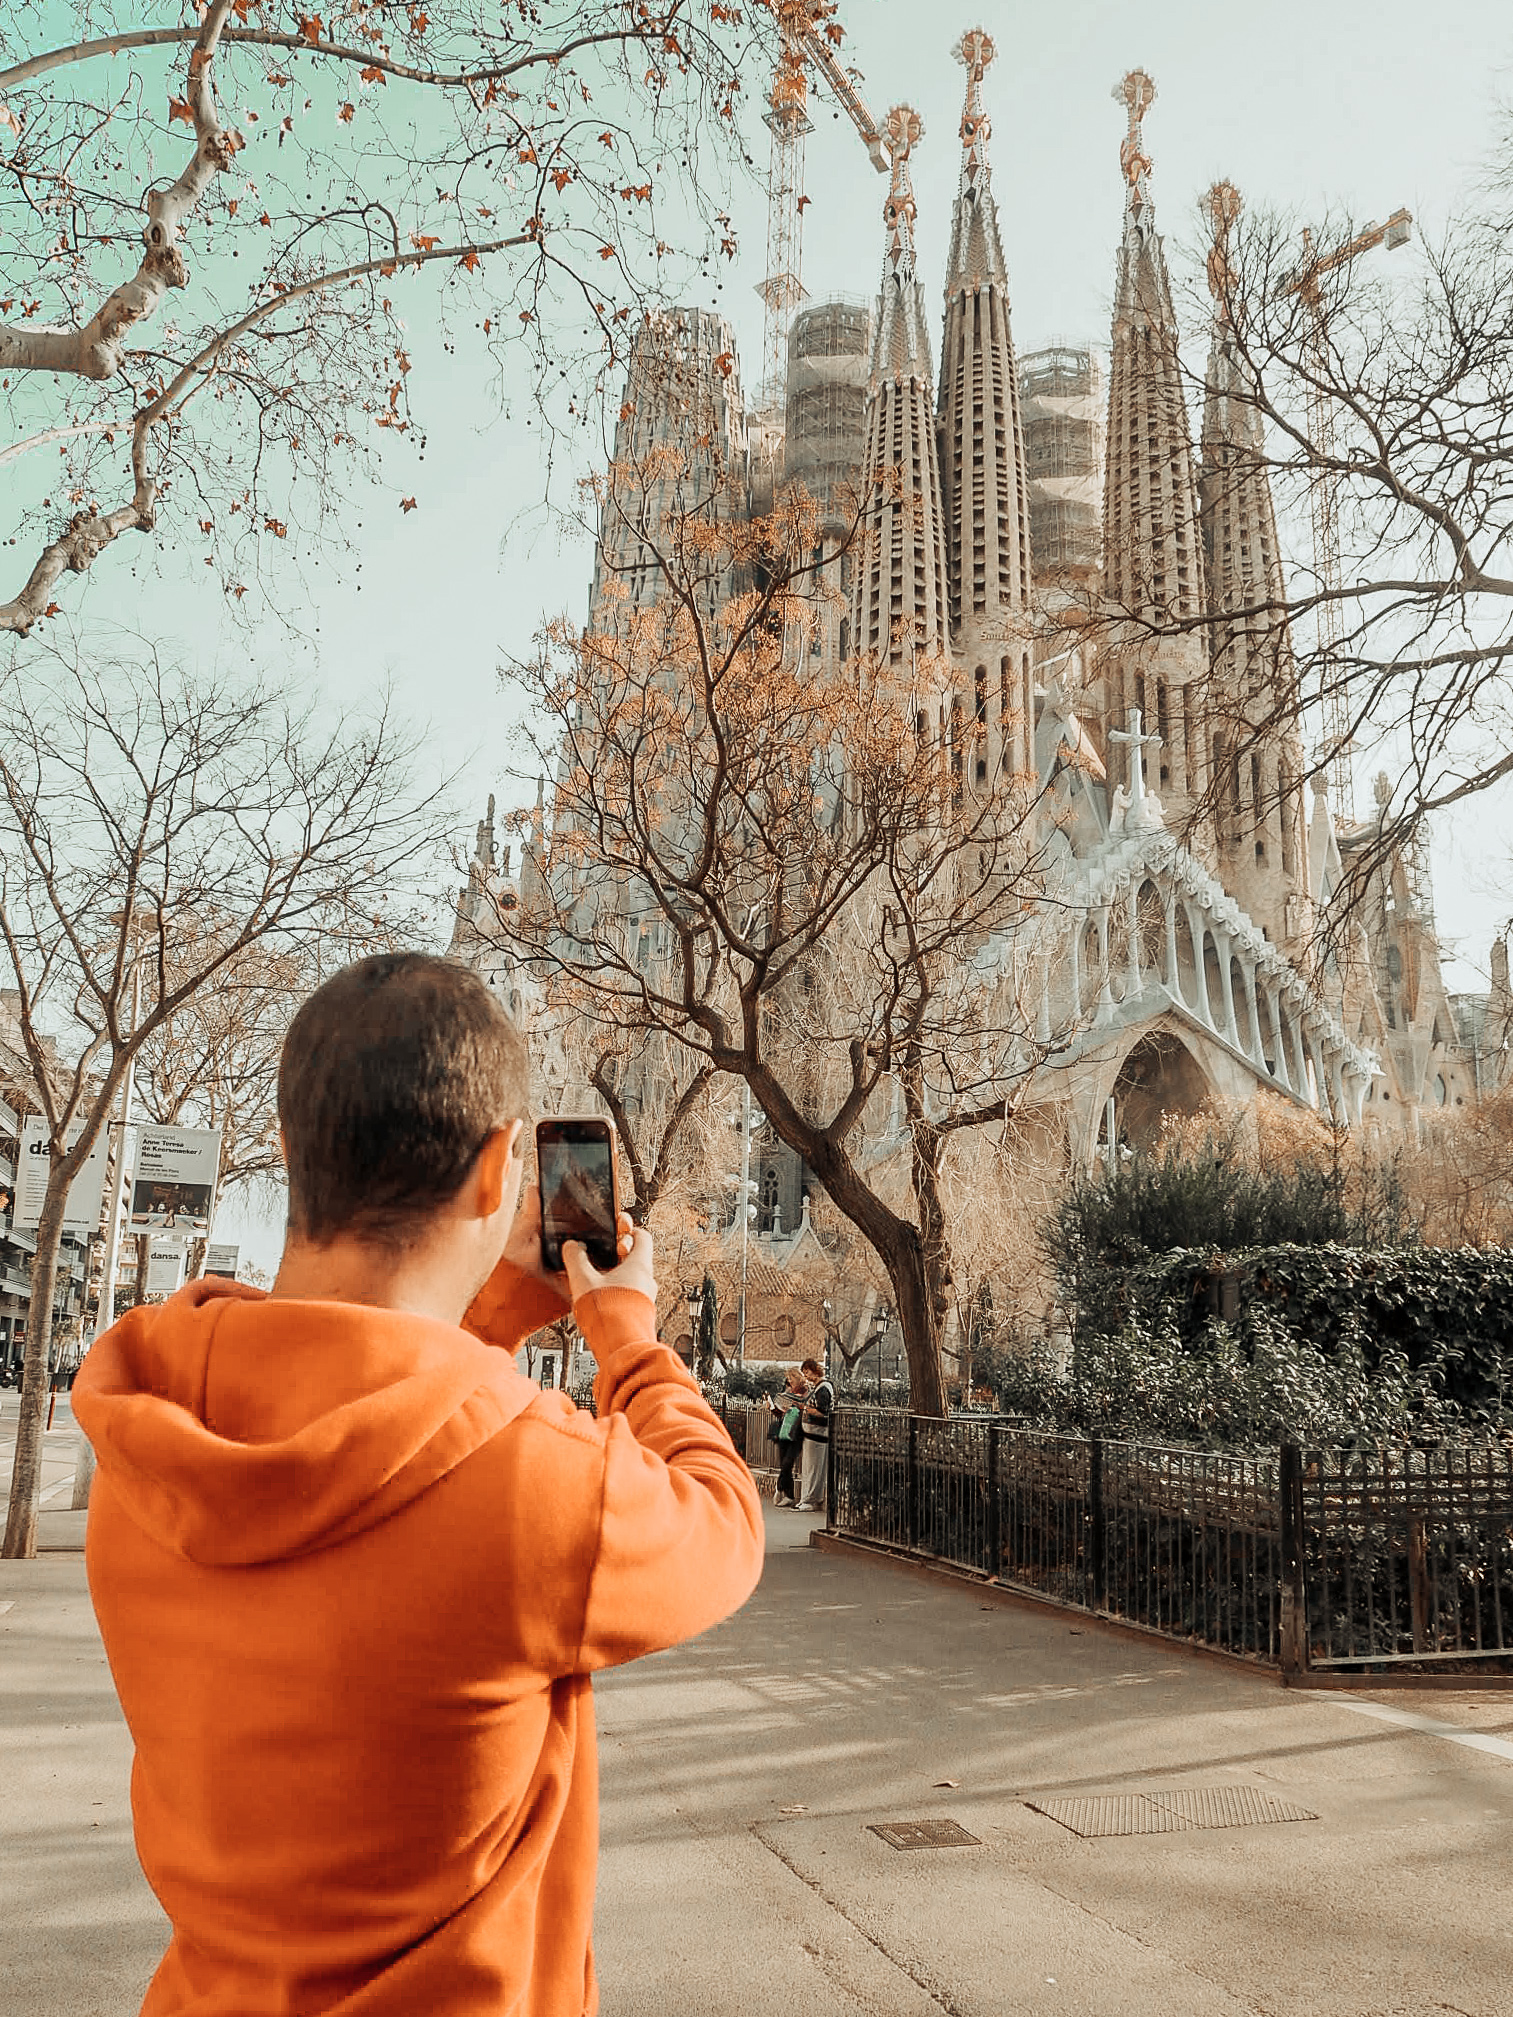 Barcelona Photo Diary - Day Three Sagrada Familia